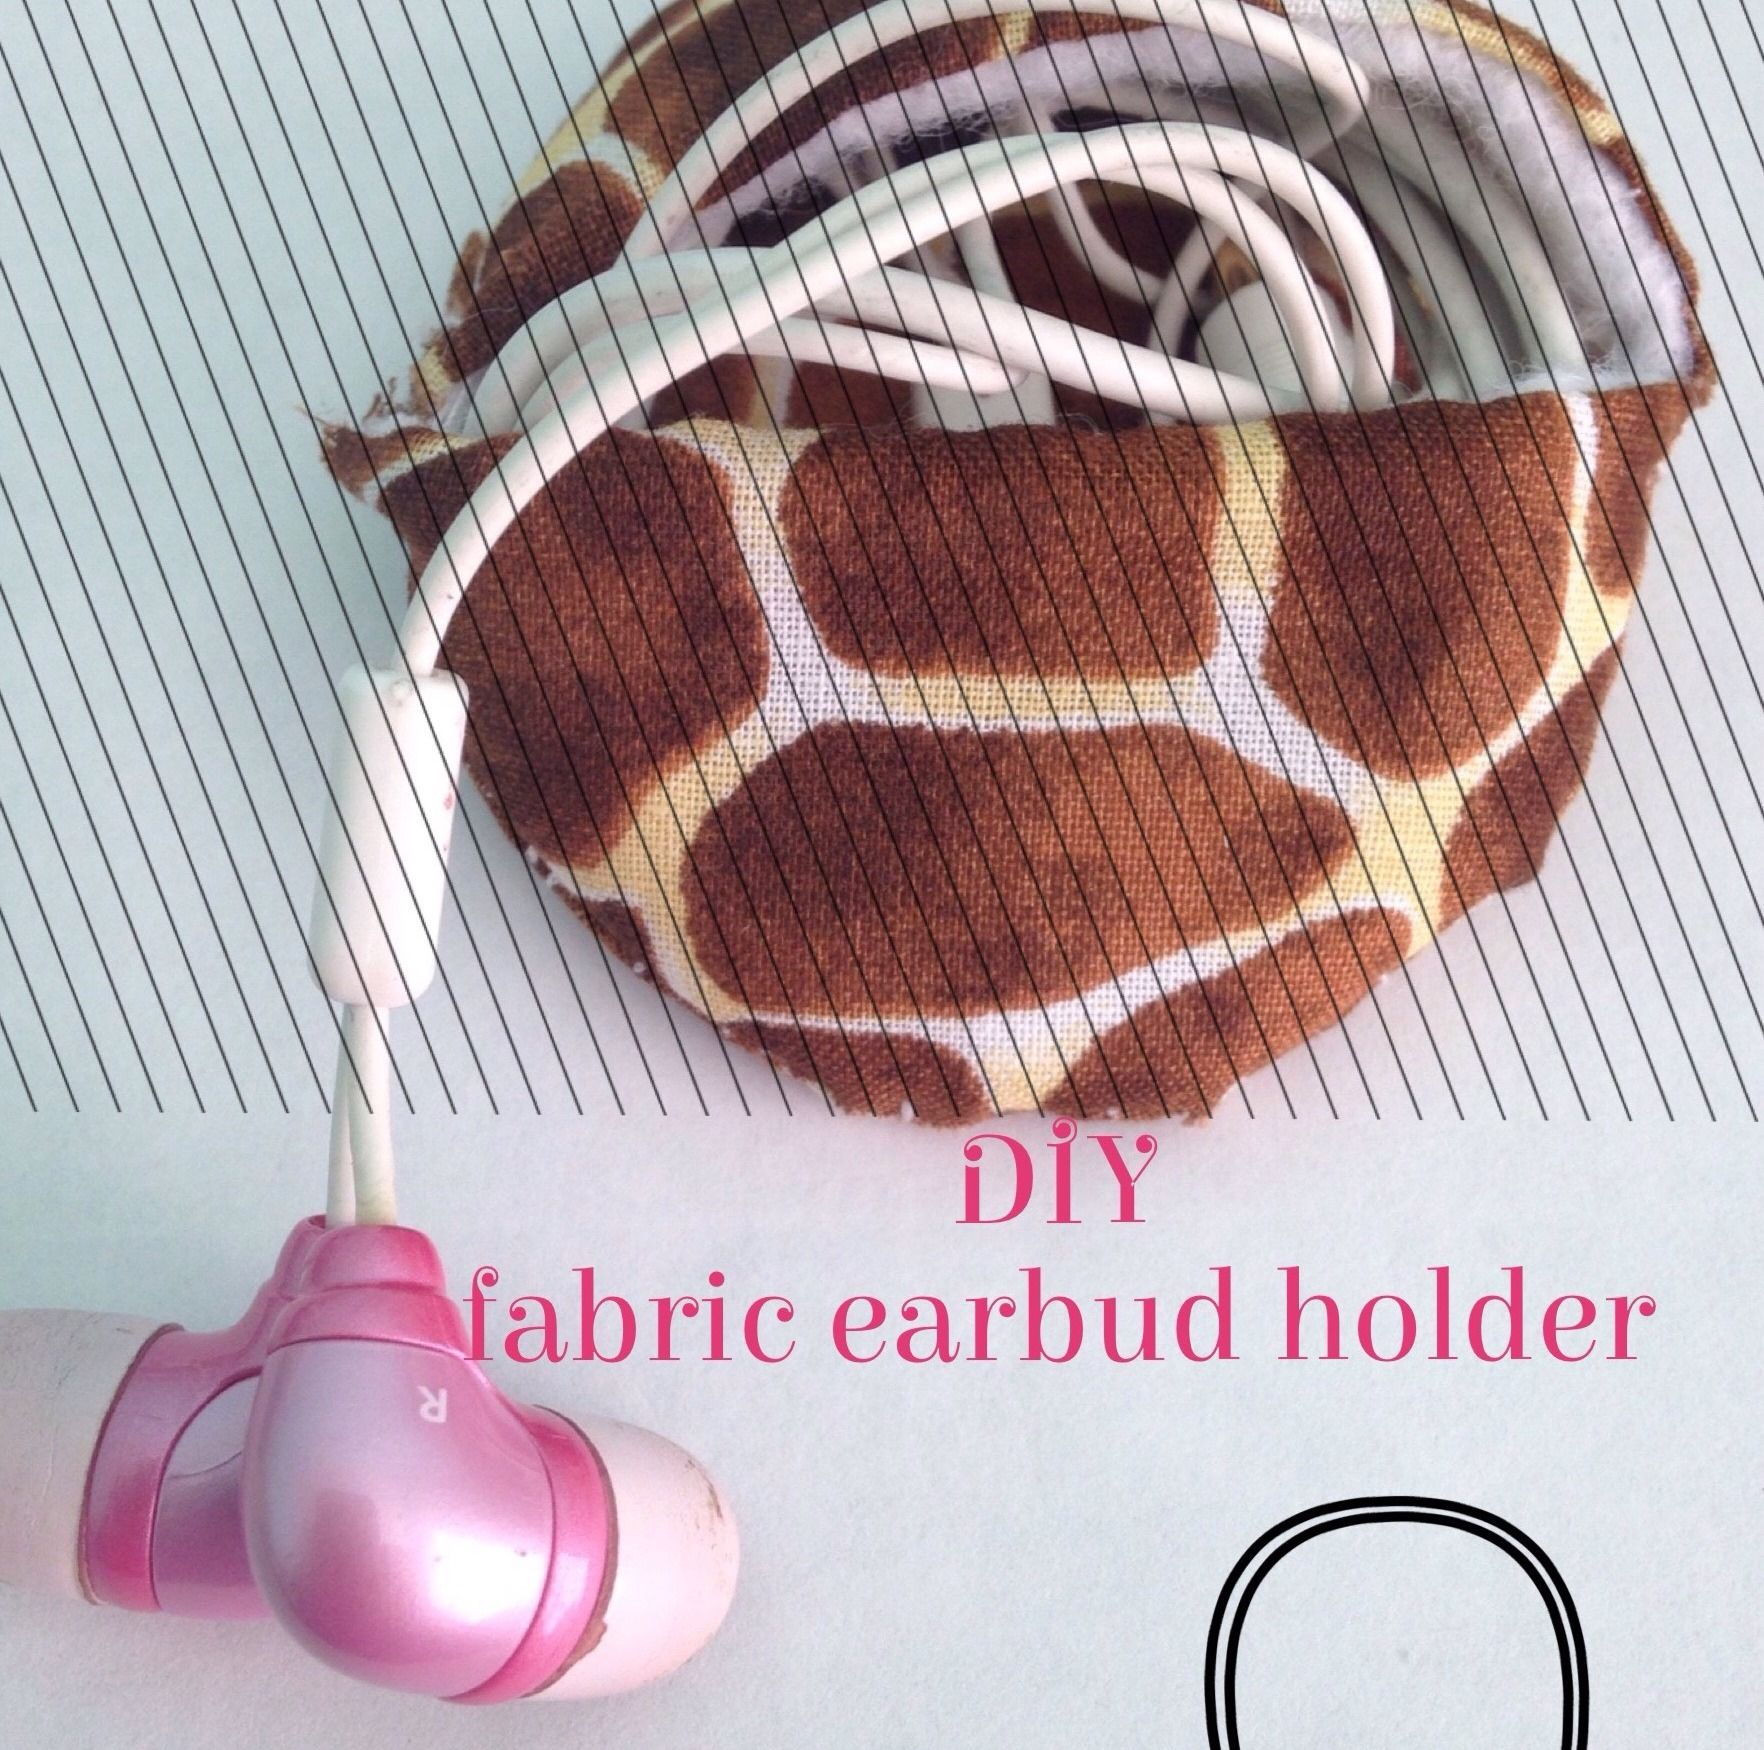 Diy Fabric Earbud Holder With Images Earbud Holder Diy Fabric